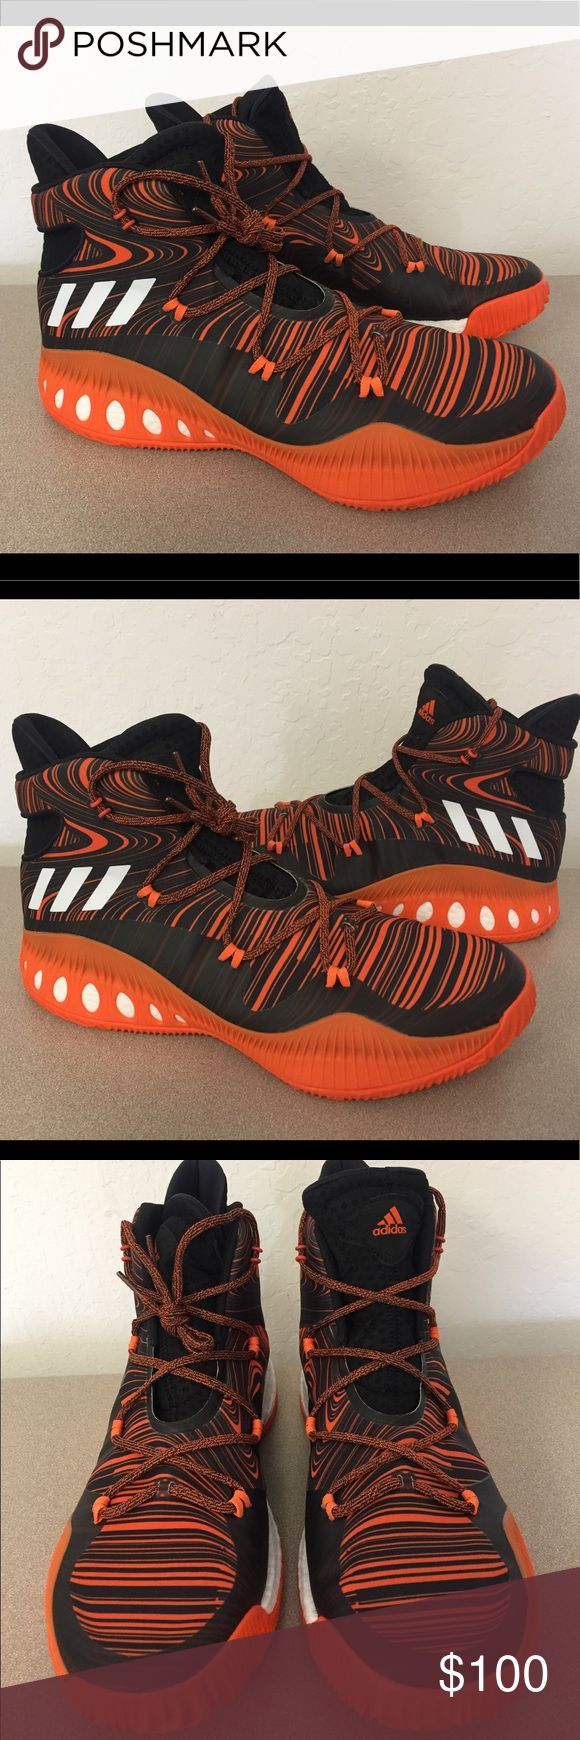 Adidas Crazy Explosive Men's Basketball Shoes Brand : adidas  Style Code : B38865  Color : Orange/Black  Size : US Men's 13.5  These basketball shoes are built for his thrilling style of play. Lightweight and quick in transition, the textile and synthetic upper features graphics inspired by the superstar himself. Full-length boost helps harness all of your raw energy on court, while the outsole delivers high traction for sharp cuts to the hoop.   BRAND NEW. NO BOX. NEVER WORN.   100%…